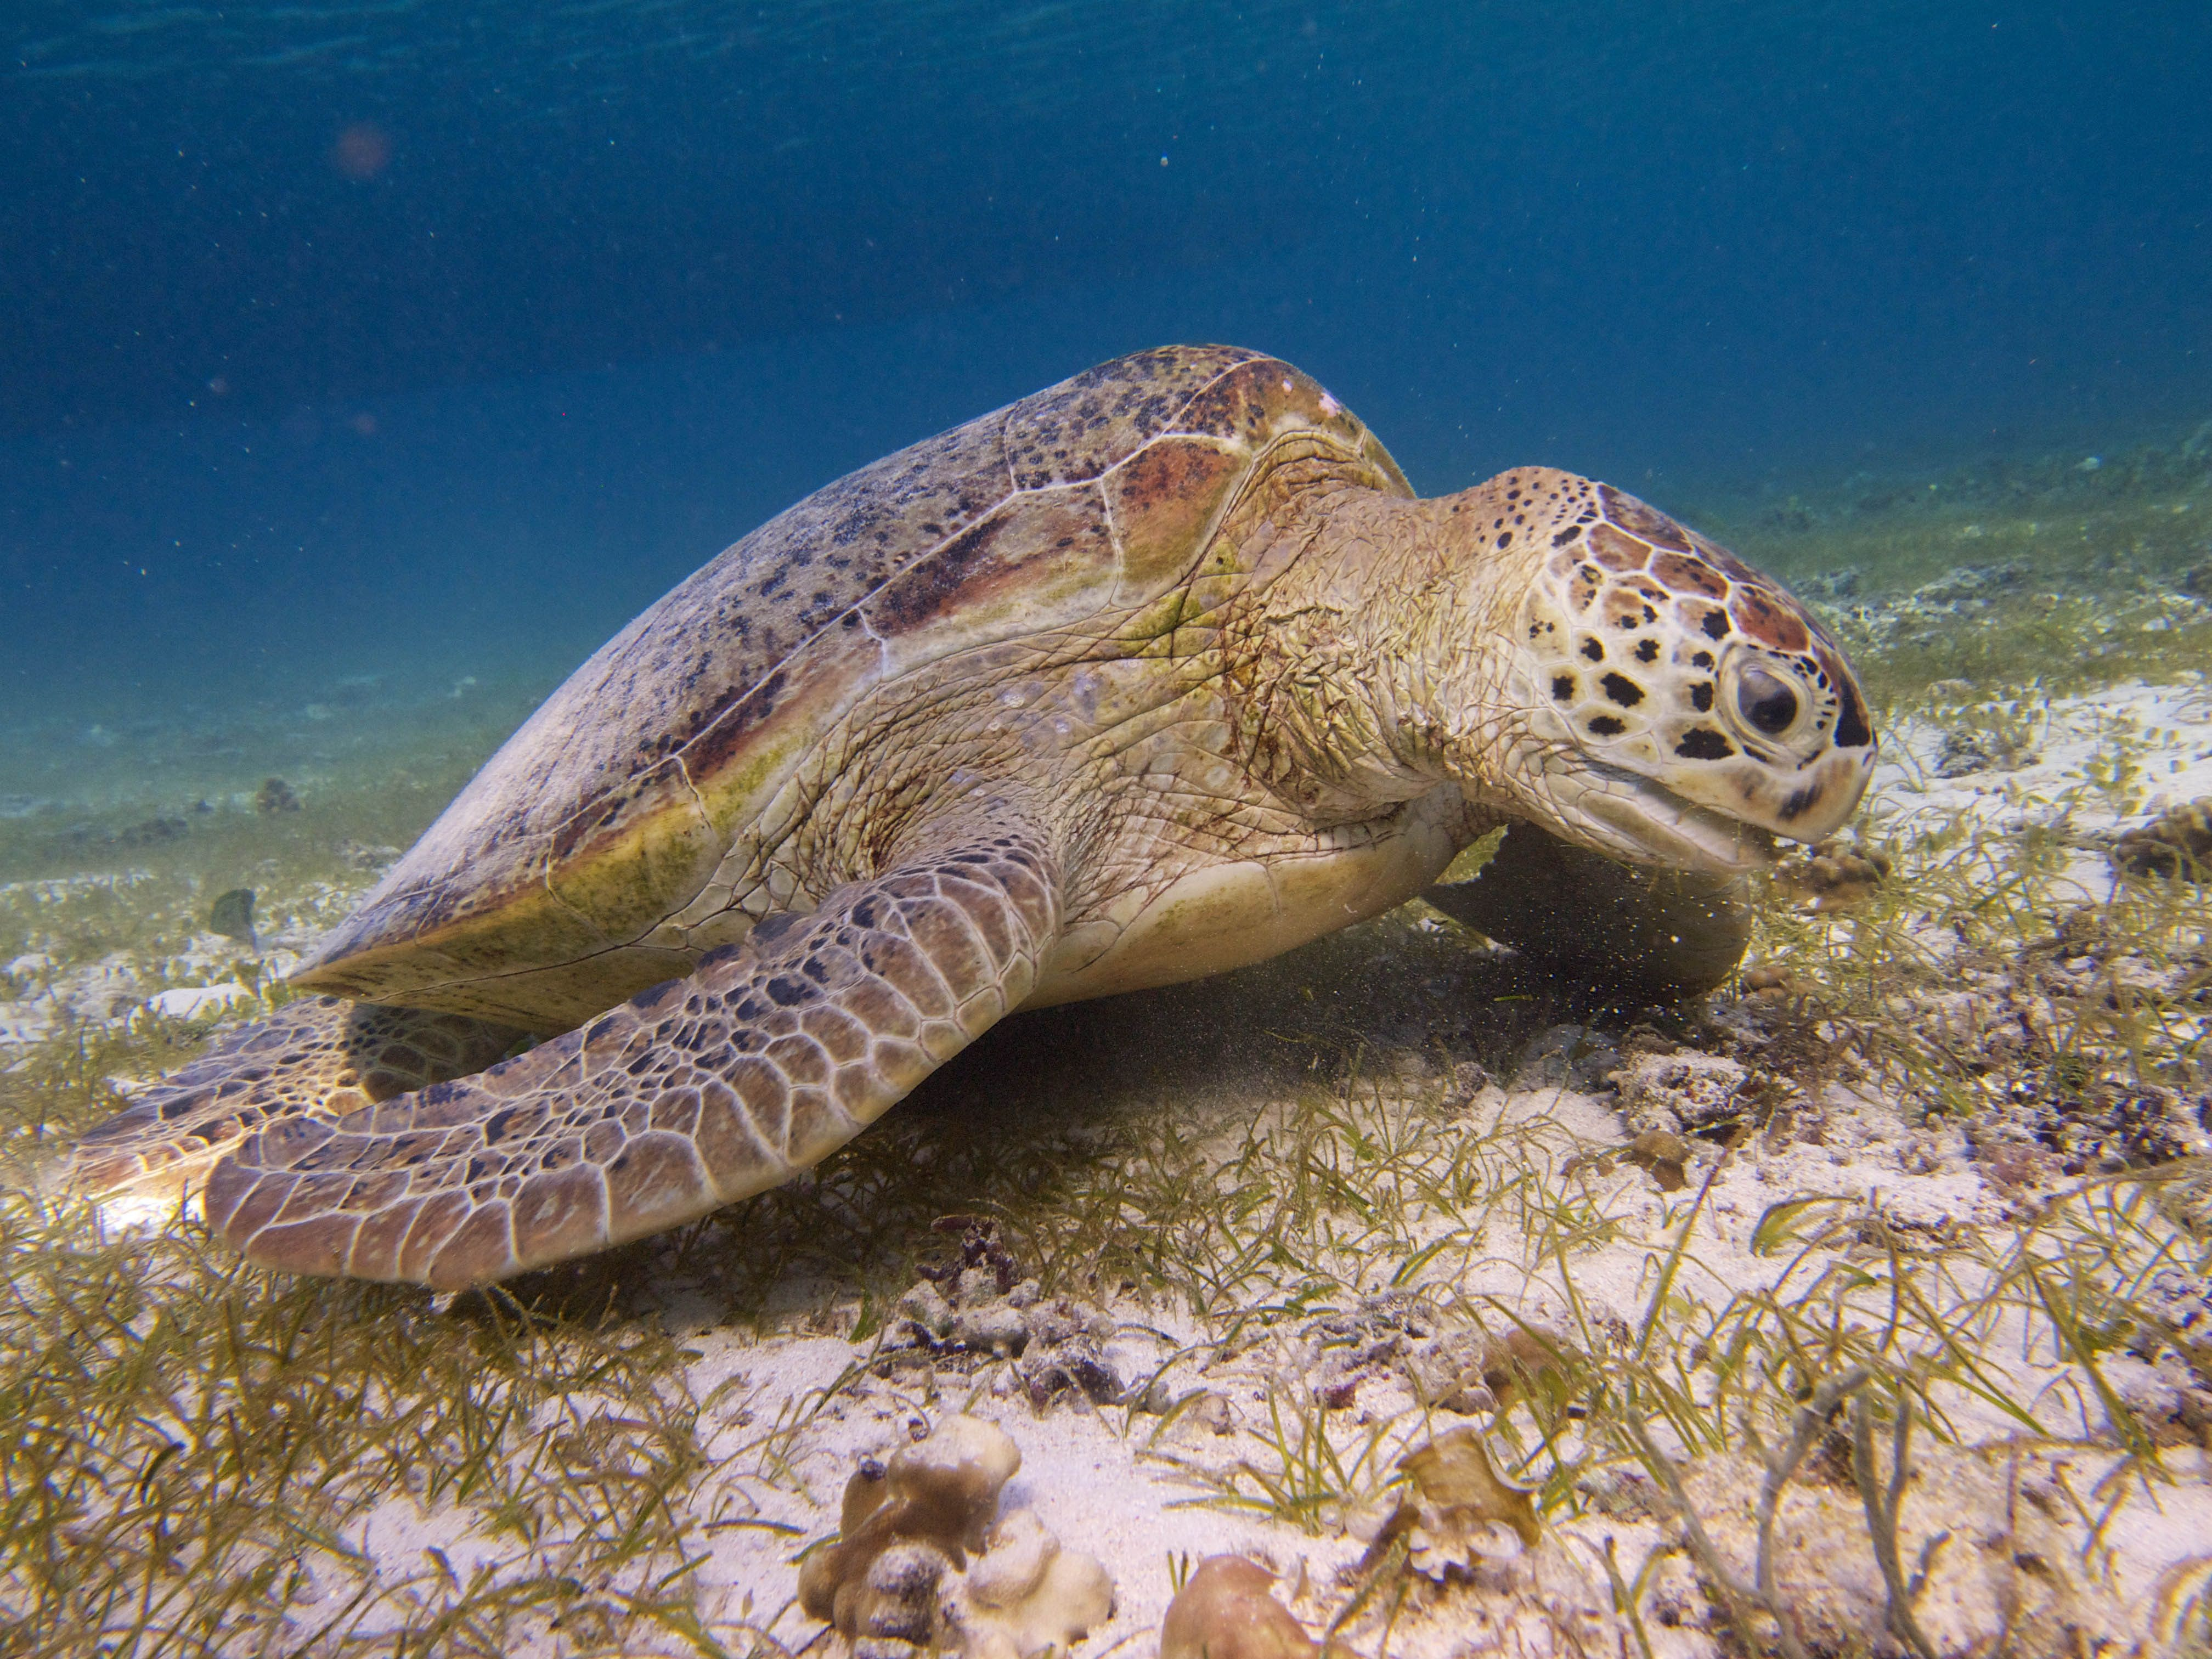 Endangered turtles face new threat in